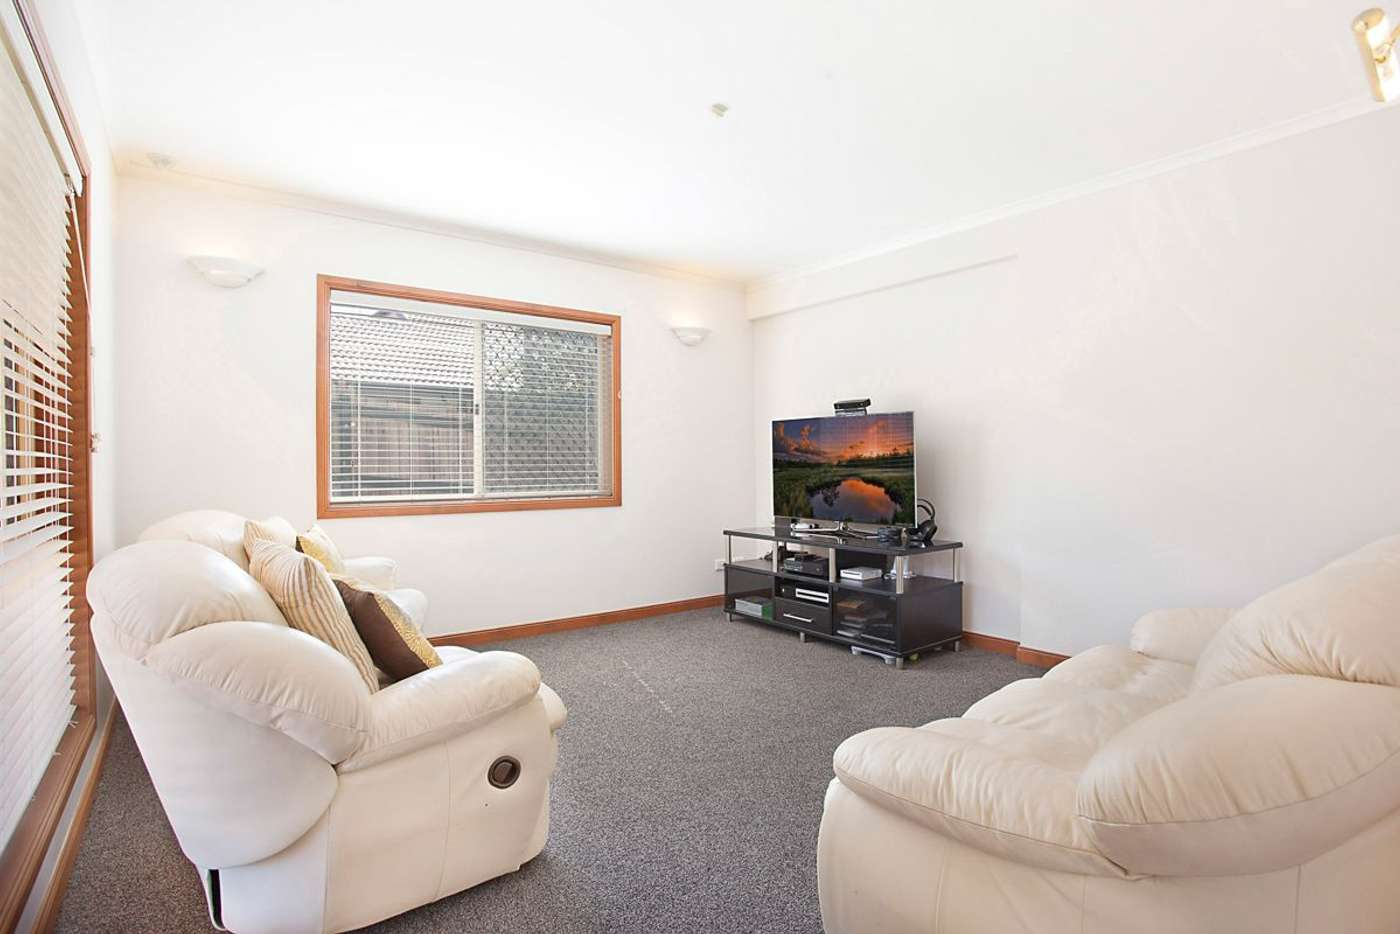 Sixth view of Homely house listing, 25 Winchcombe Avenue, Murrumba Downs QLD 4503